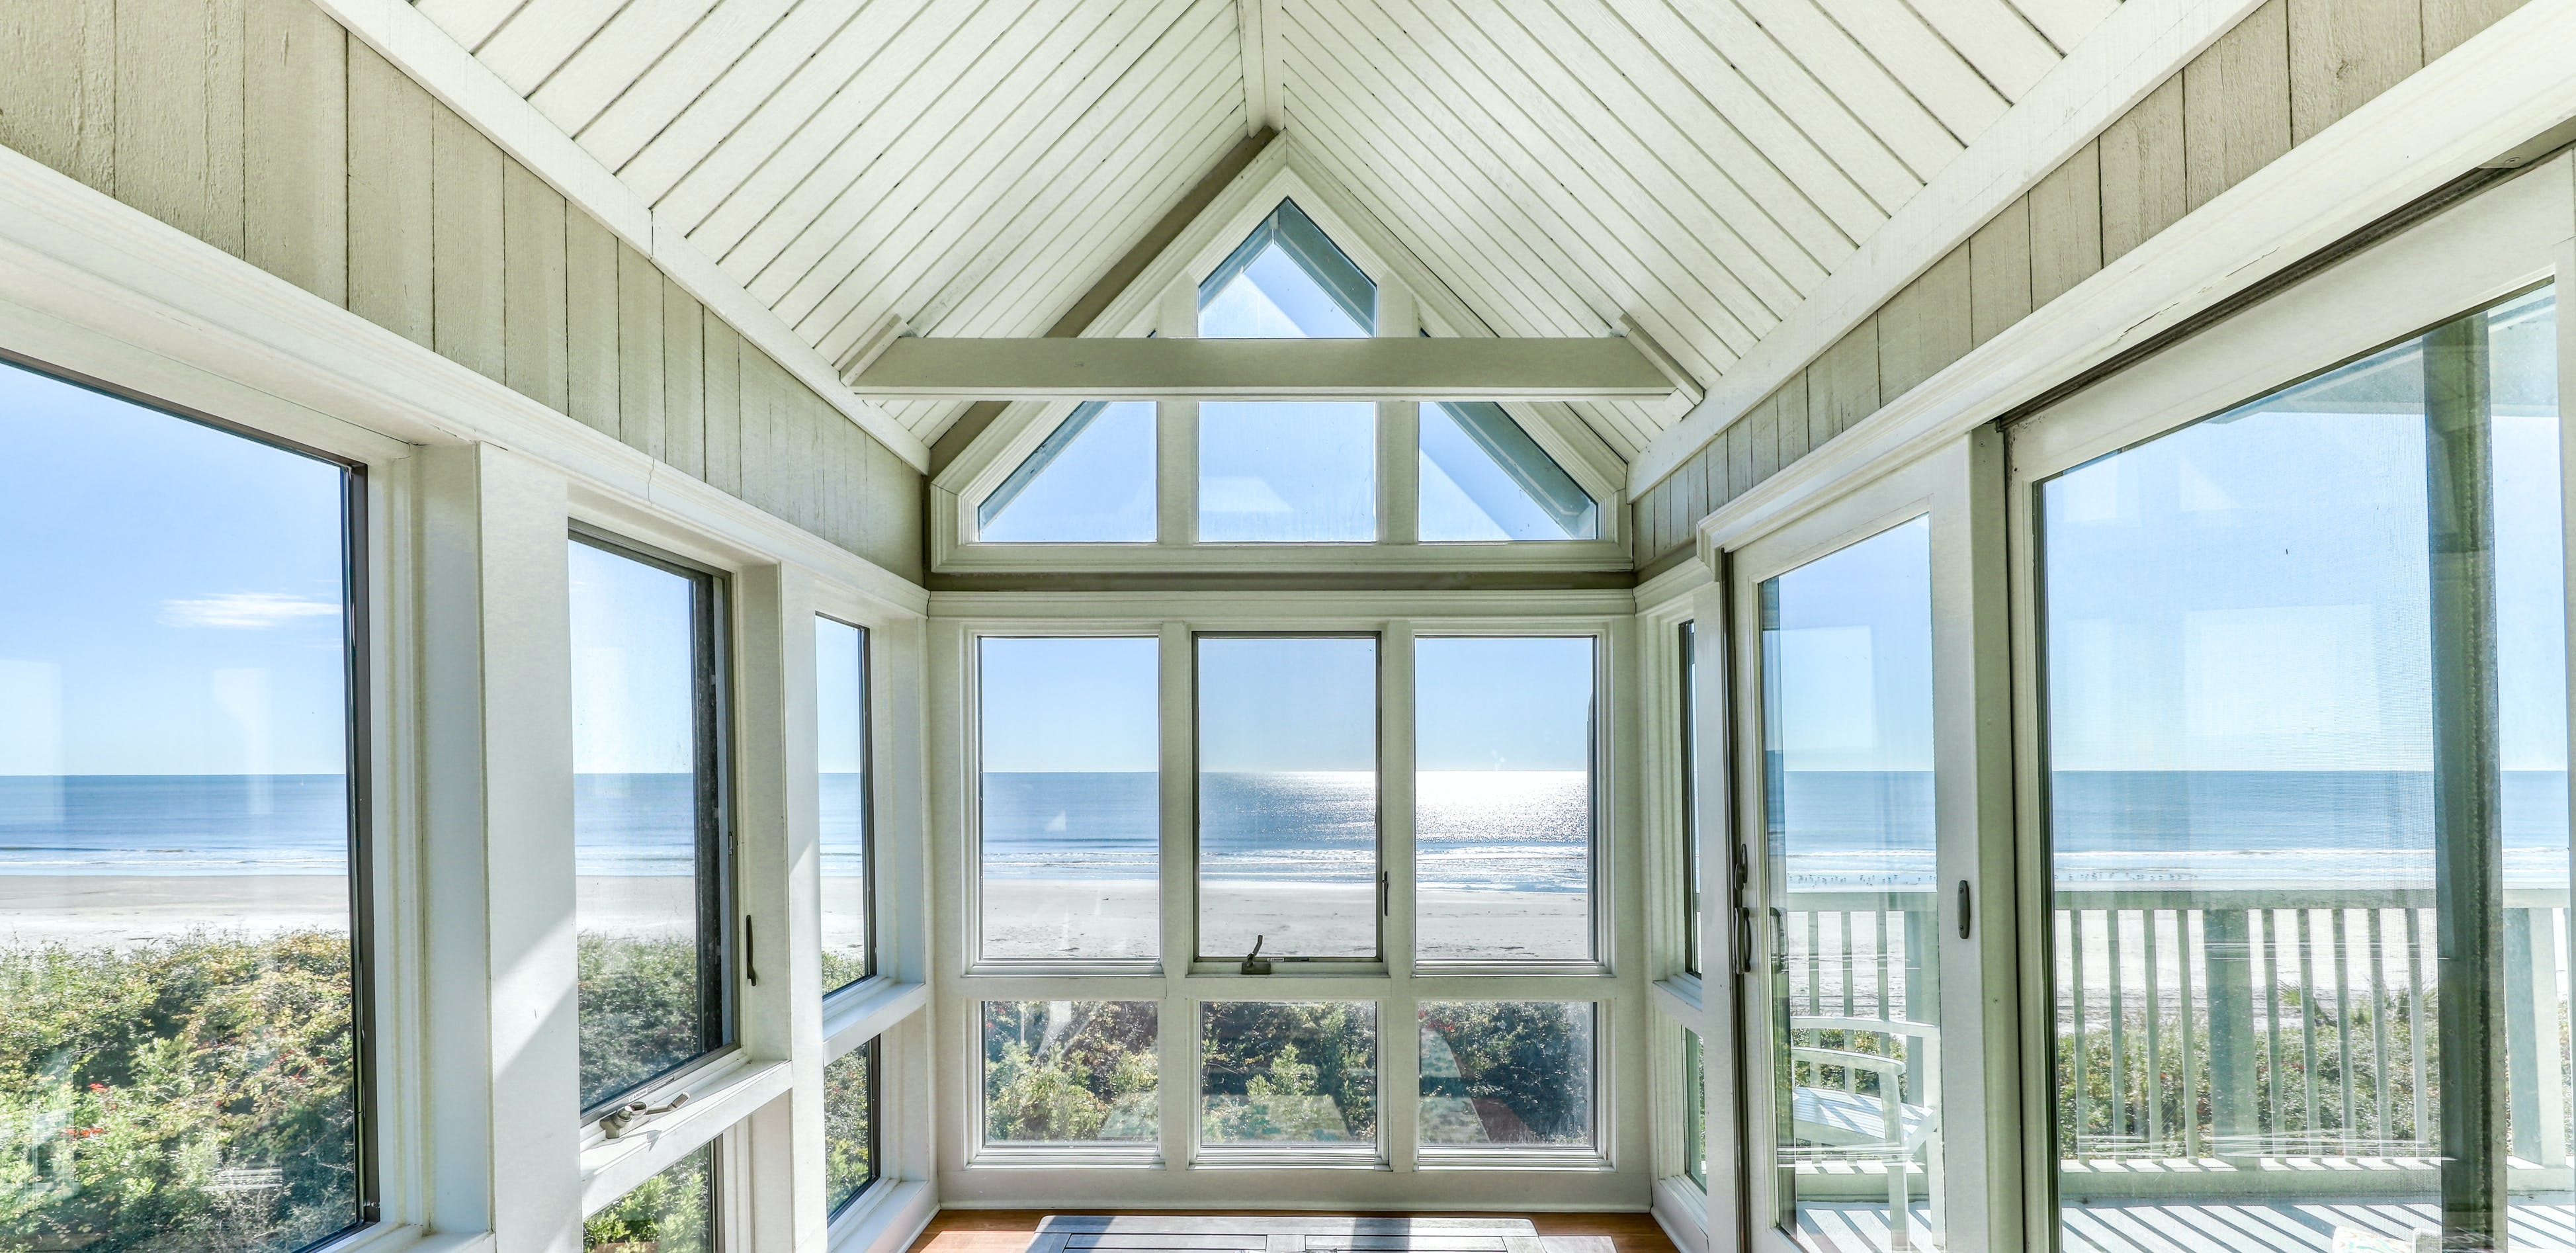 kiawah island vacation rental with ample windows and natural light